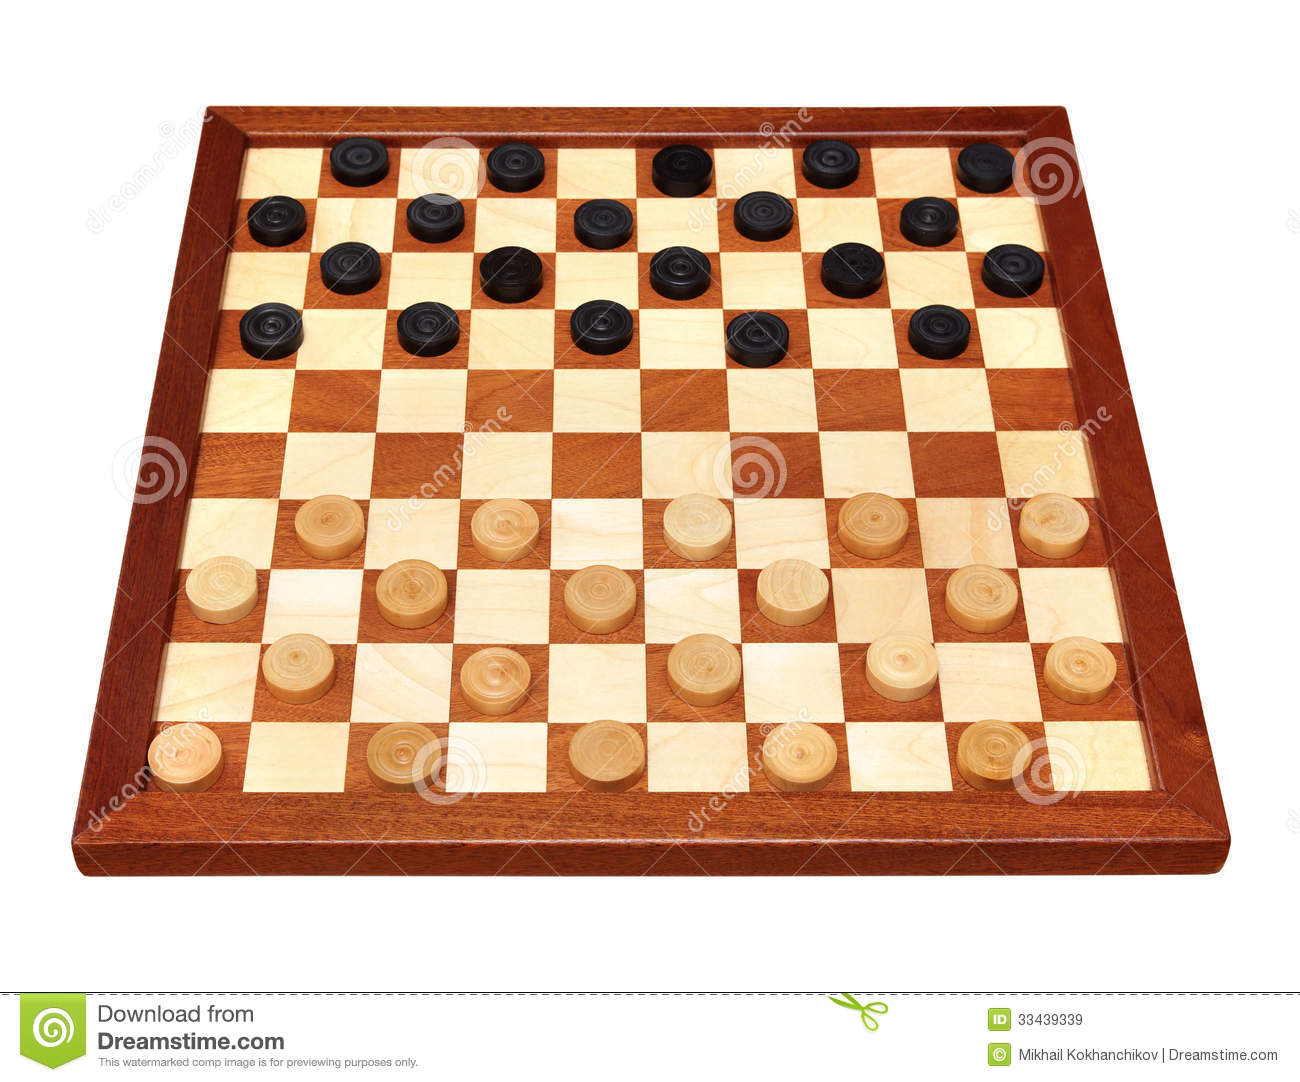 strategic planning and checkers Checkers is a classic board game which requires you to stay sharp and plan ahead devise a strategy and play against the computer or a friend and see if you have what it takes to achieve a clean sweep in this fun 2-player strategy game.